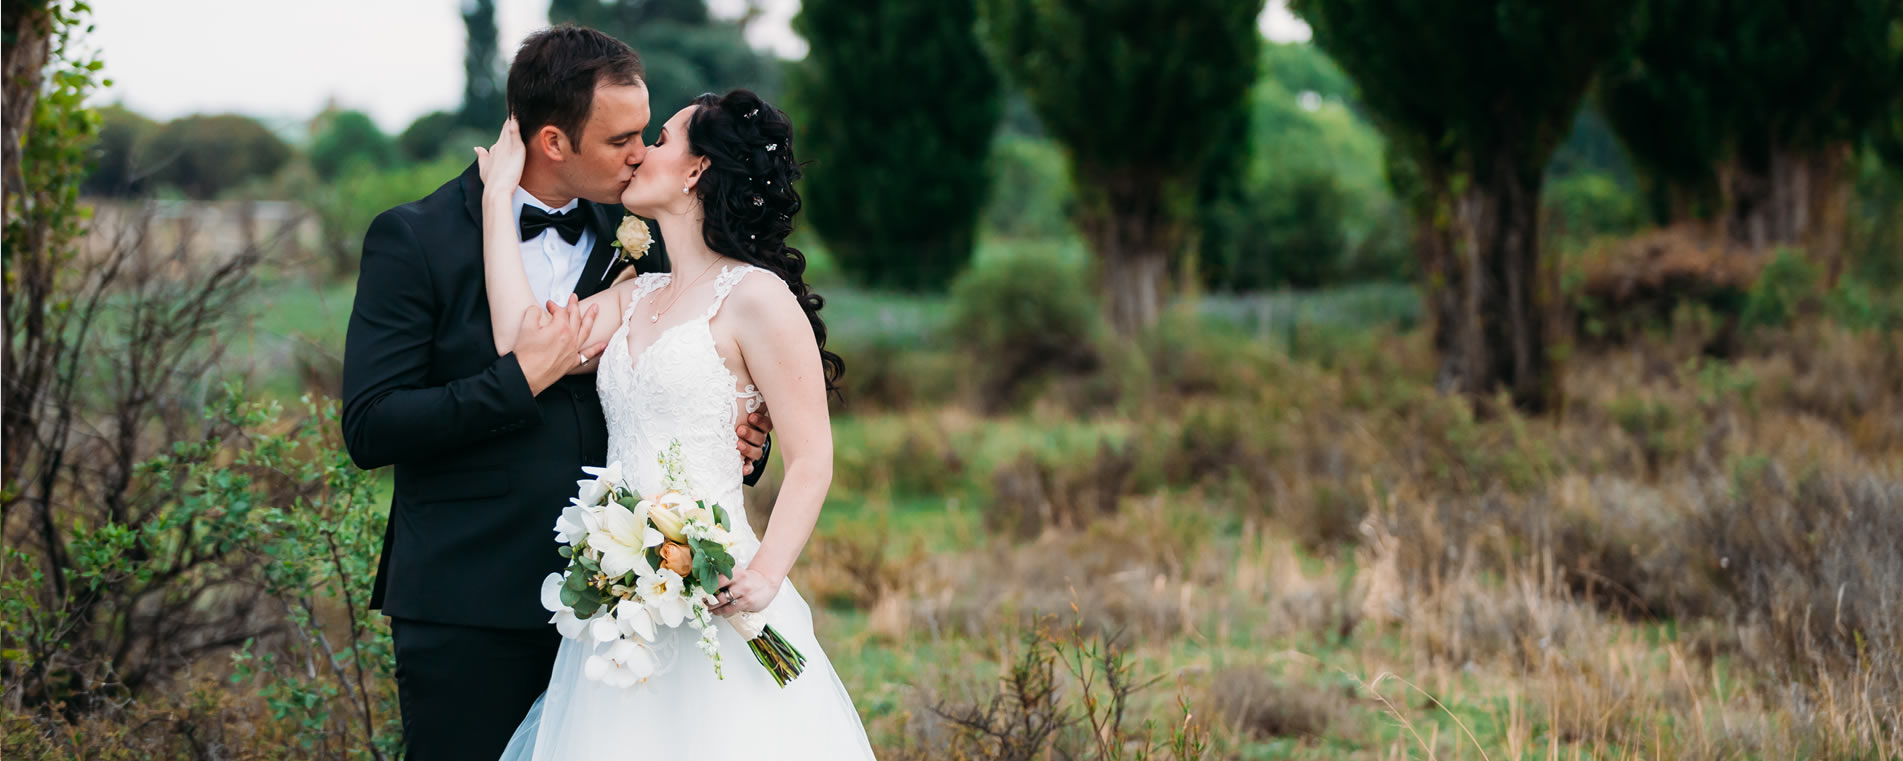 Cheap Wedding Photographers In Bloemfontein